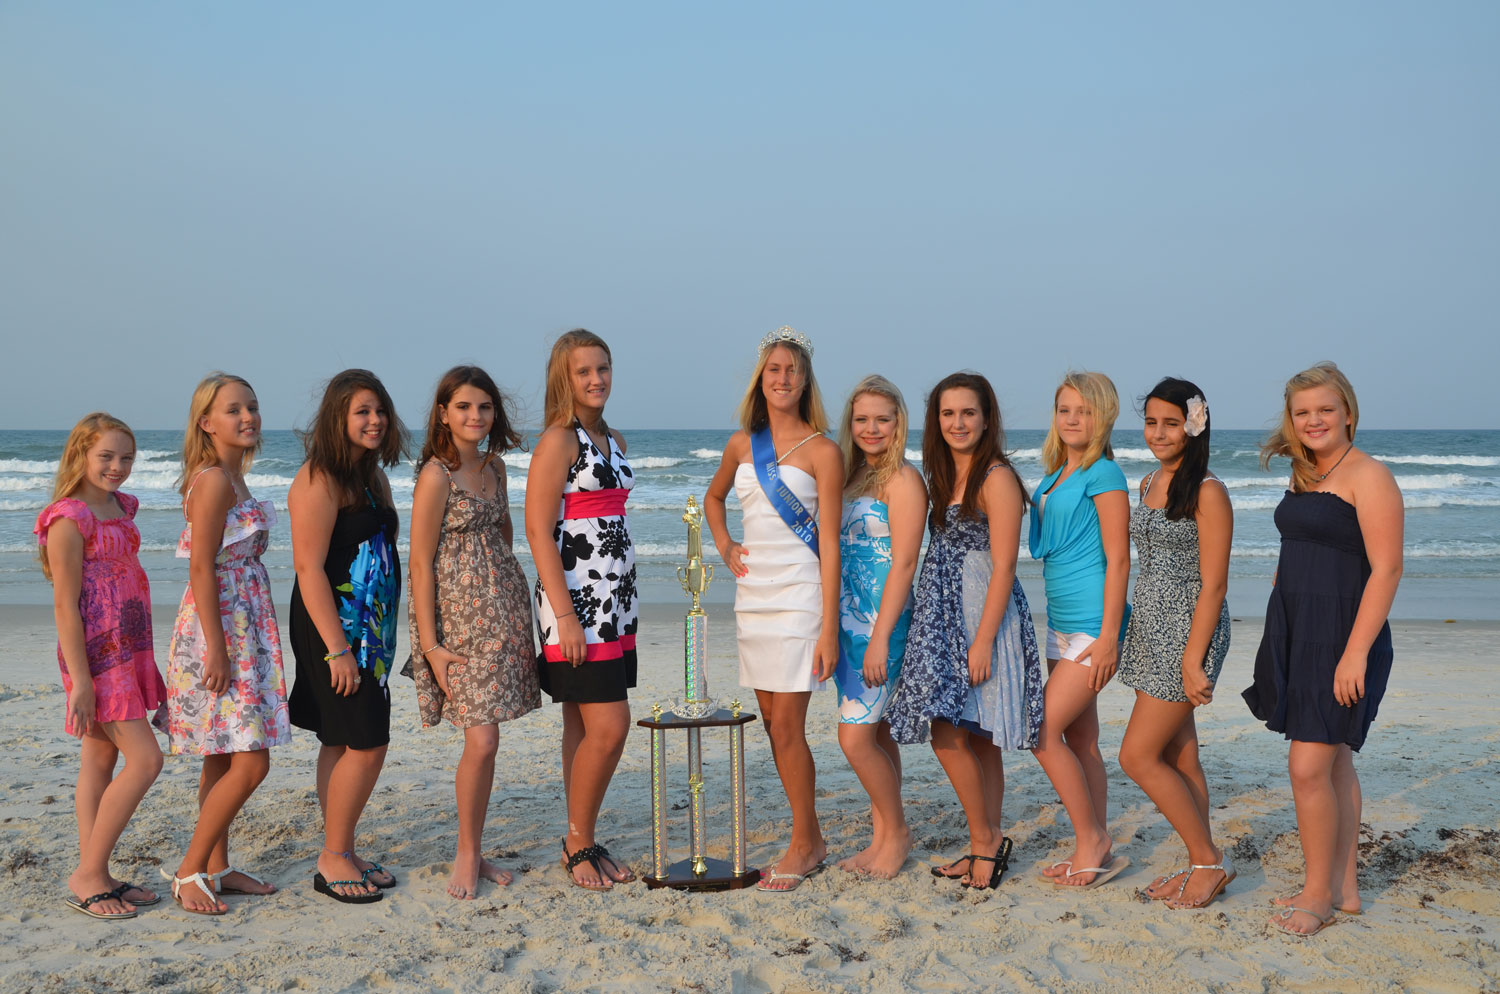 Miss Junior Flagler County 2011 Contestants, Ages 12-15